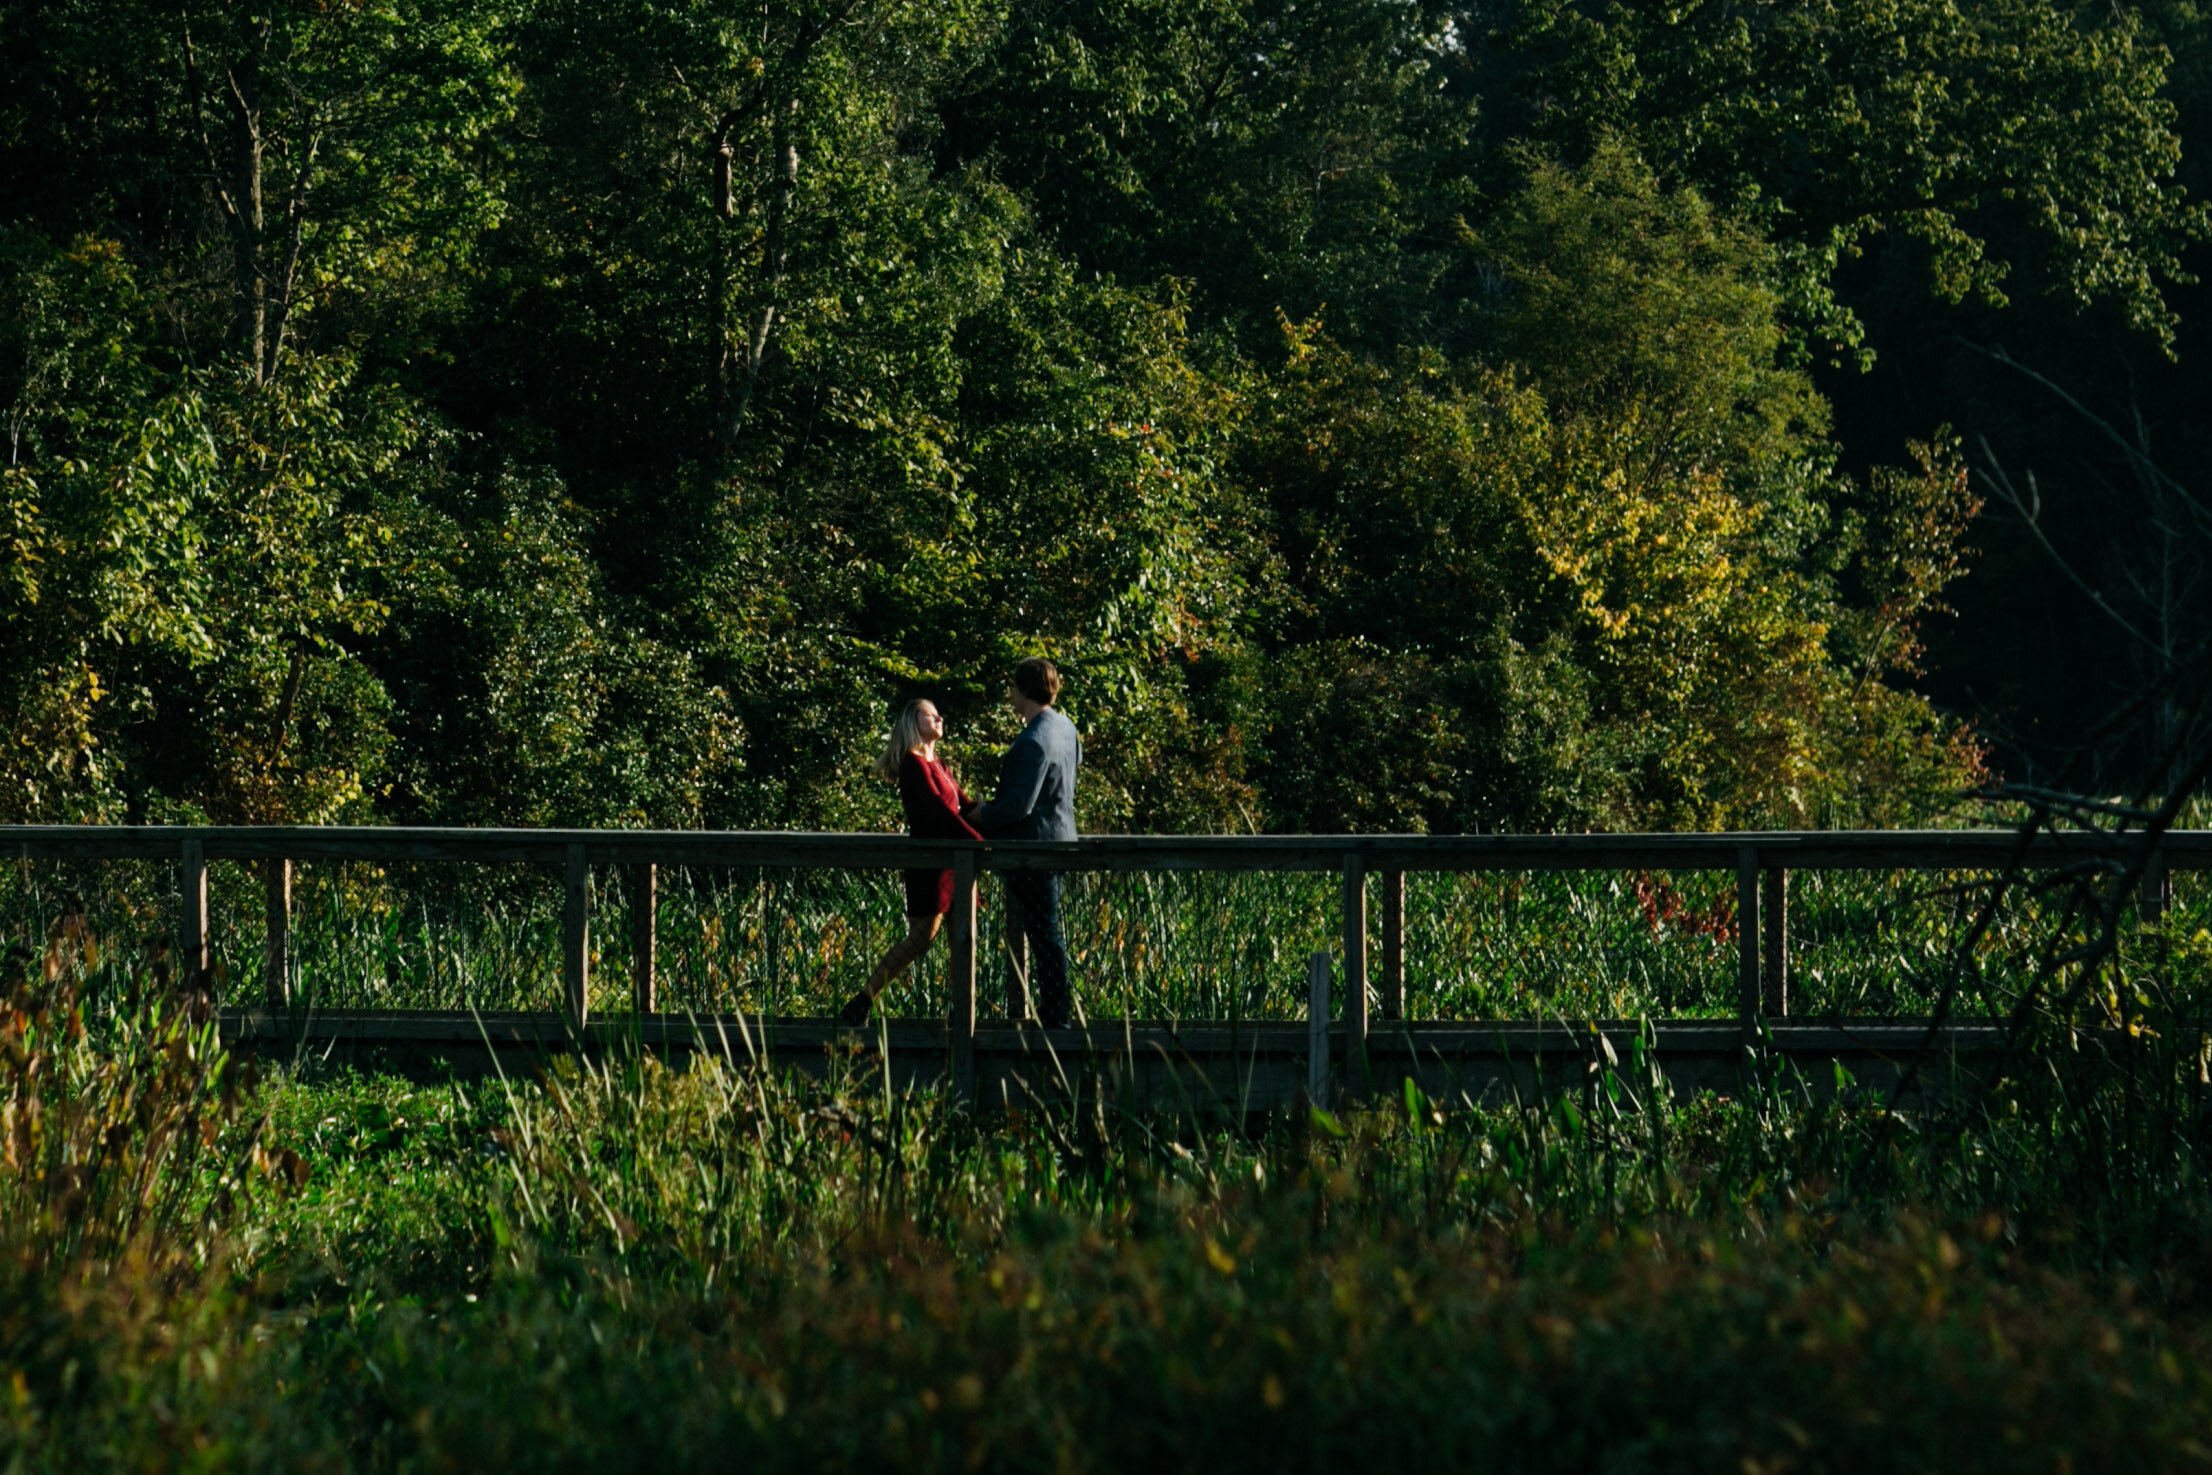 sasha_garth_engagement_mason_neck_state_park_summer_sunset_green_Forest-5.jpg